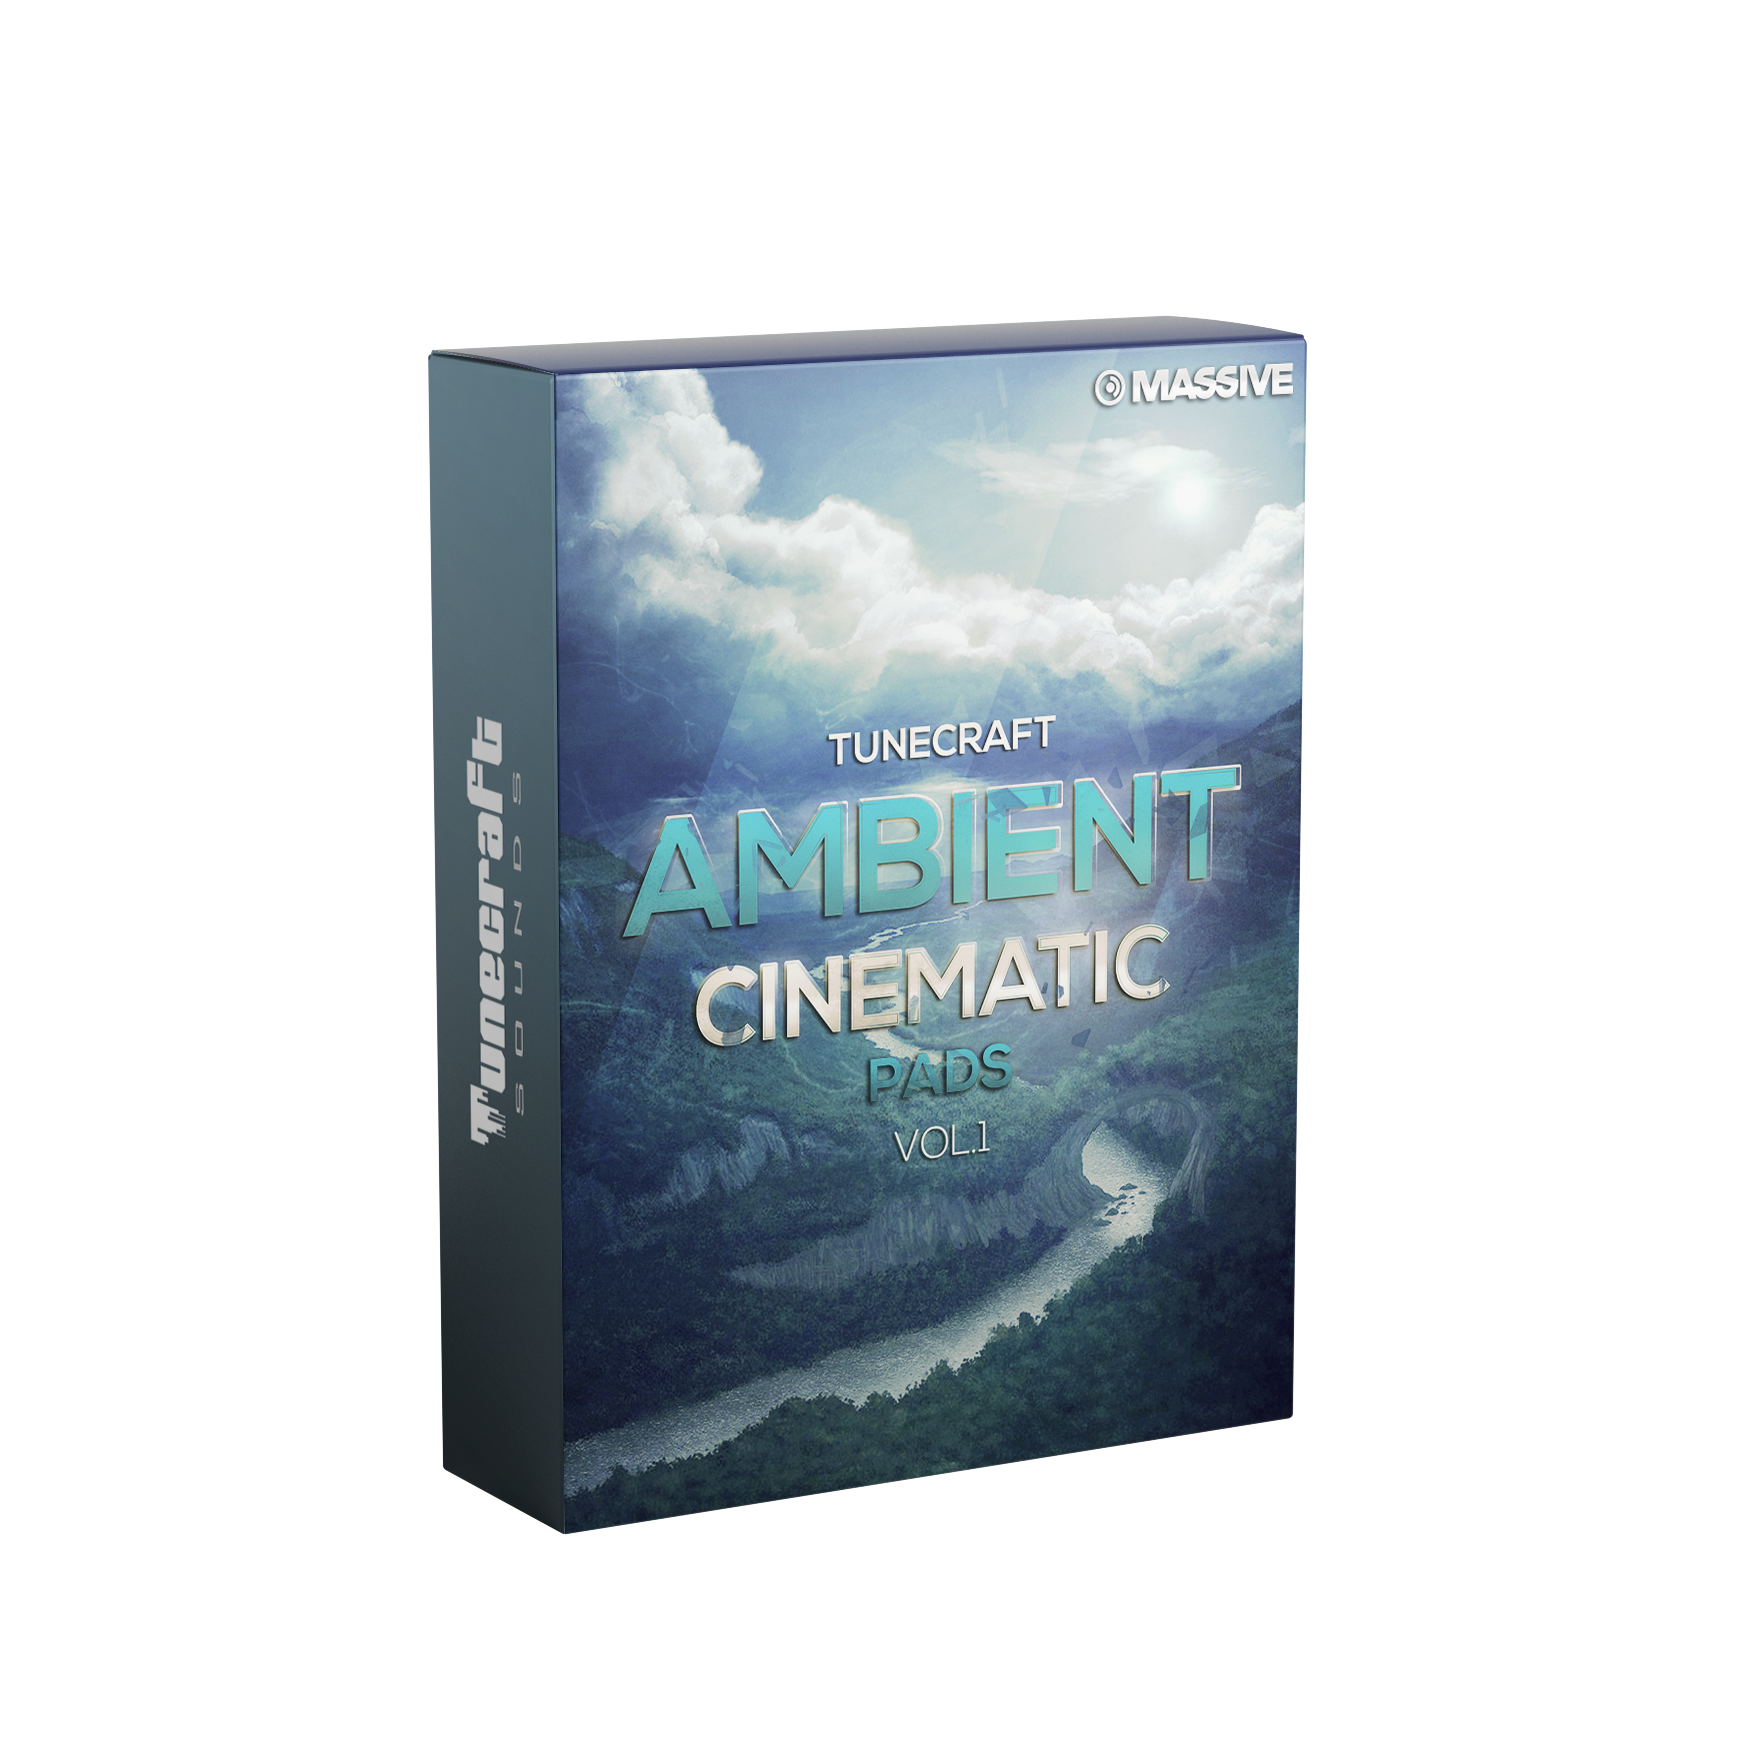 Ambient-Pads-v1-3D-box-NS